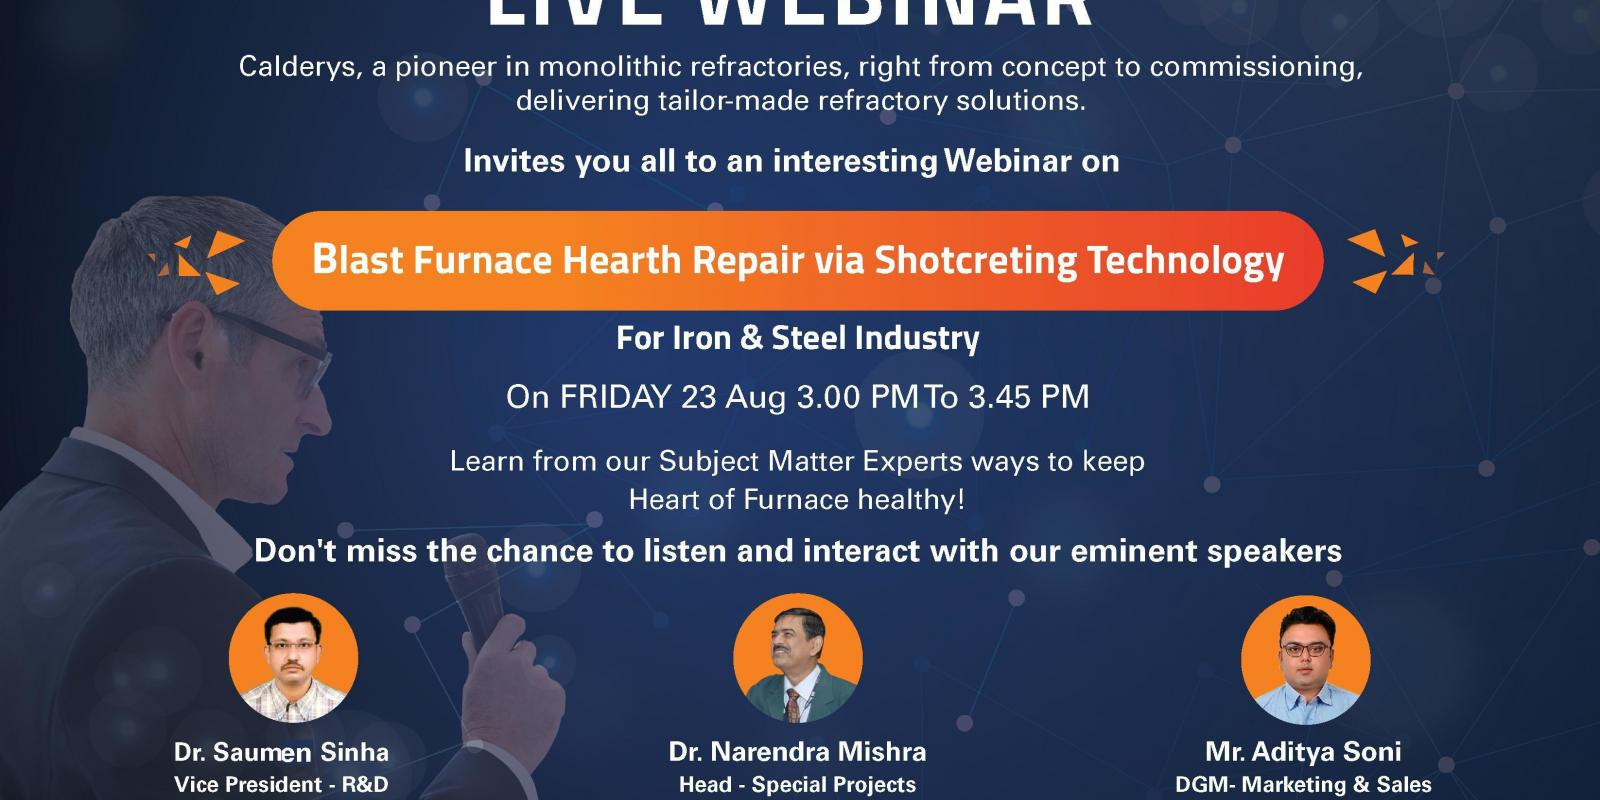 Calderys India Refractory Webinar on Blast Furnace Hearth repair for the Iron Industry